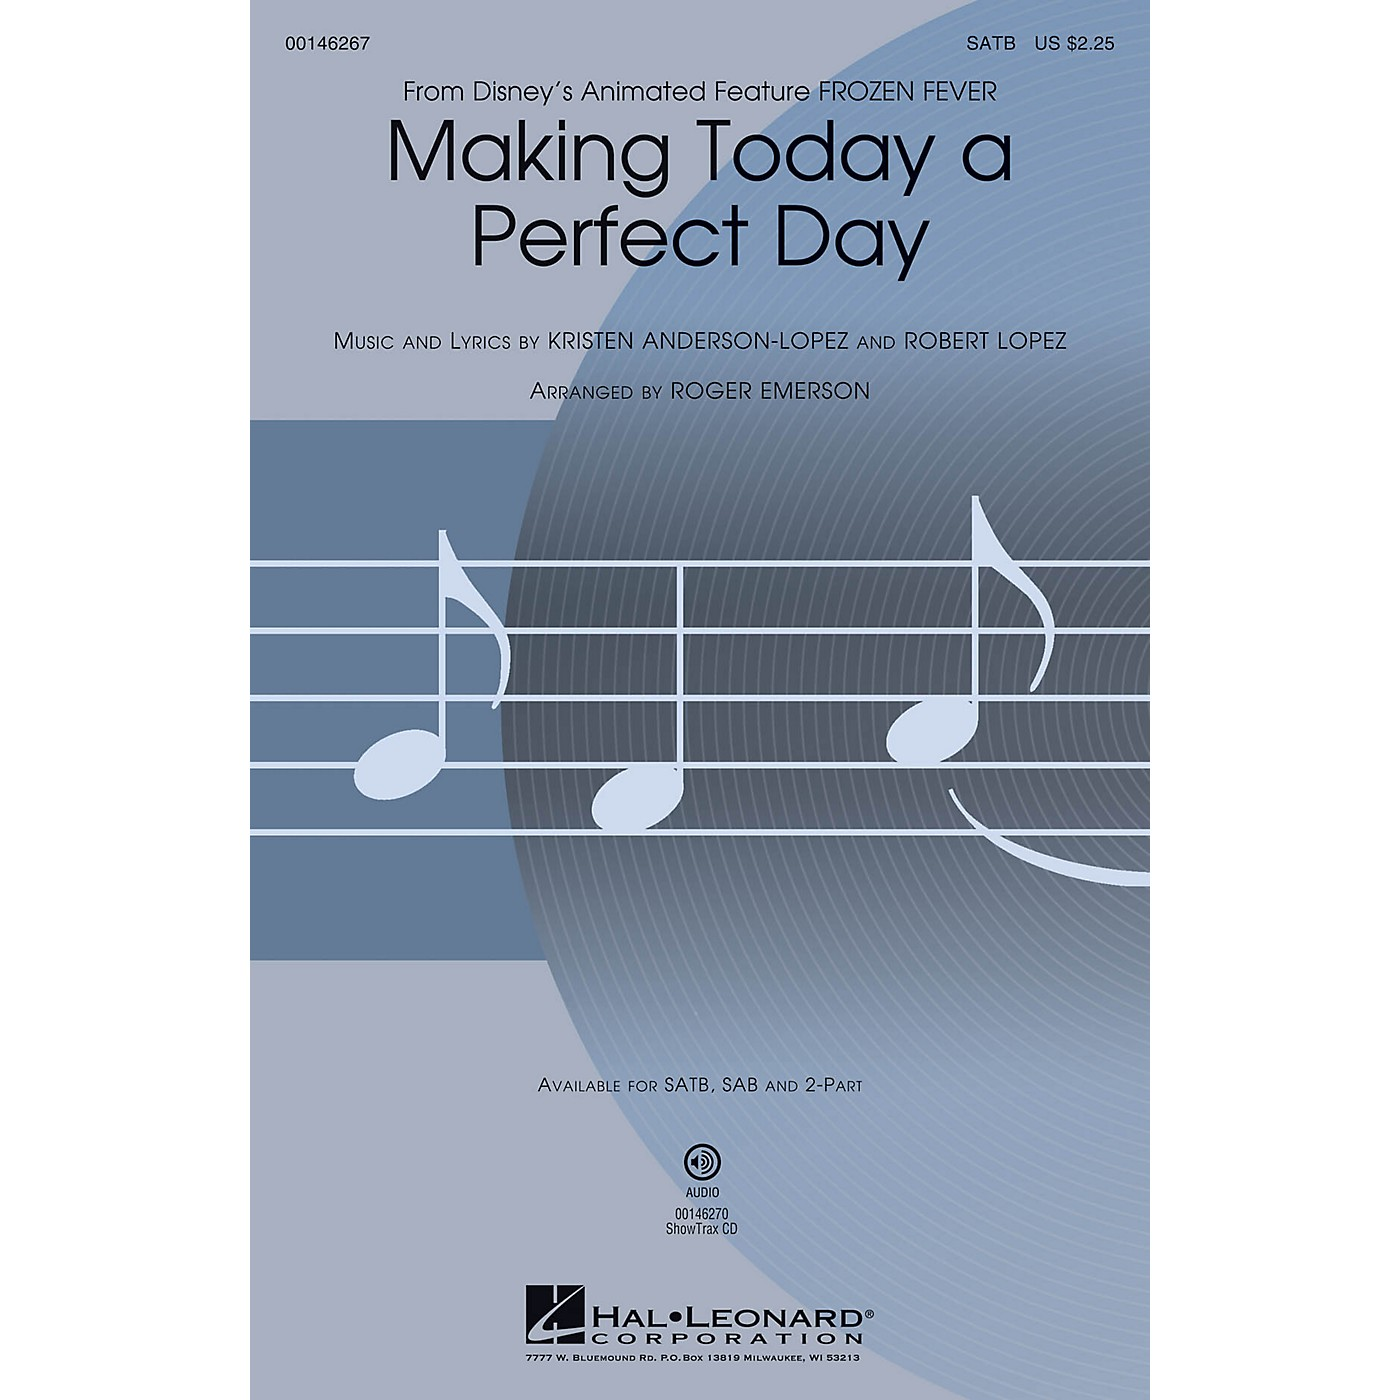 Hal Leonard Making Today a Perfect Day (from Frozen Fever) SATB arranged by Roger Emerson thumbnail